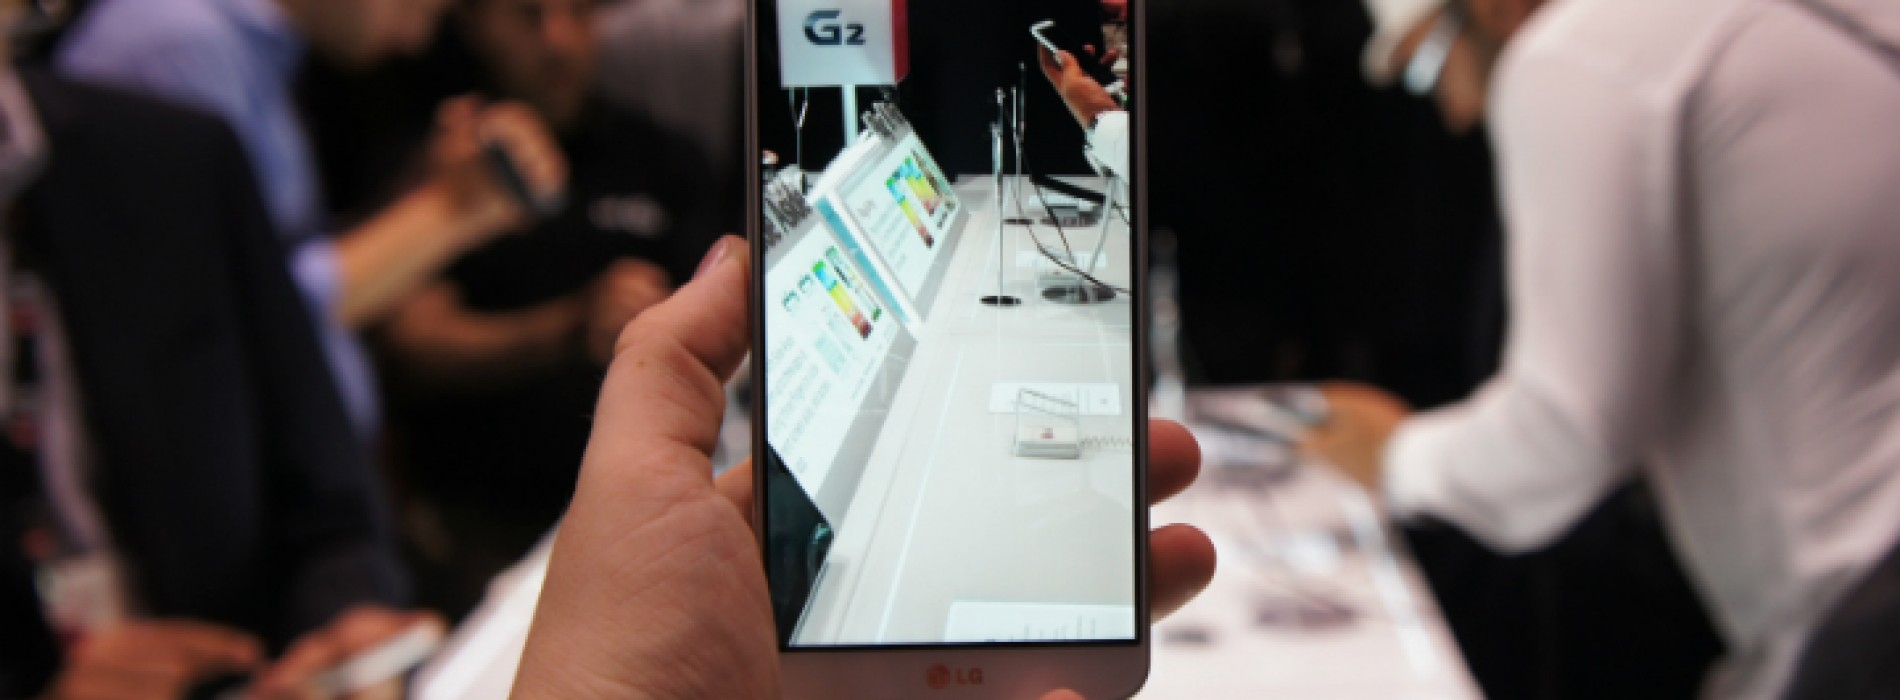 Verizon taps LG G2 with September 12 launch